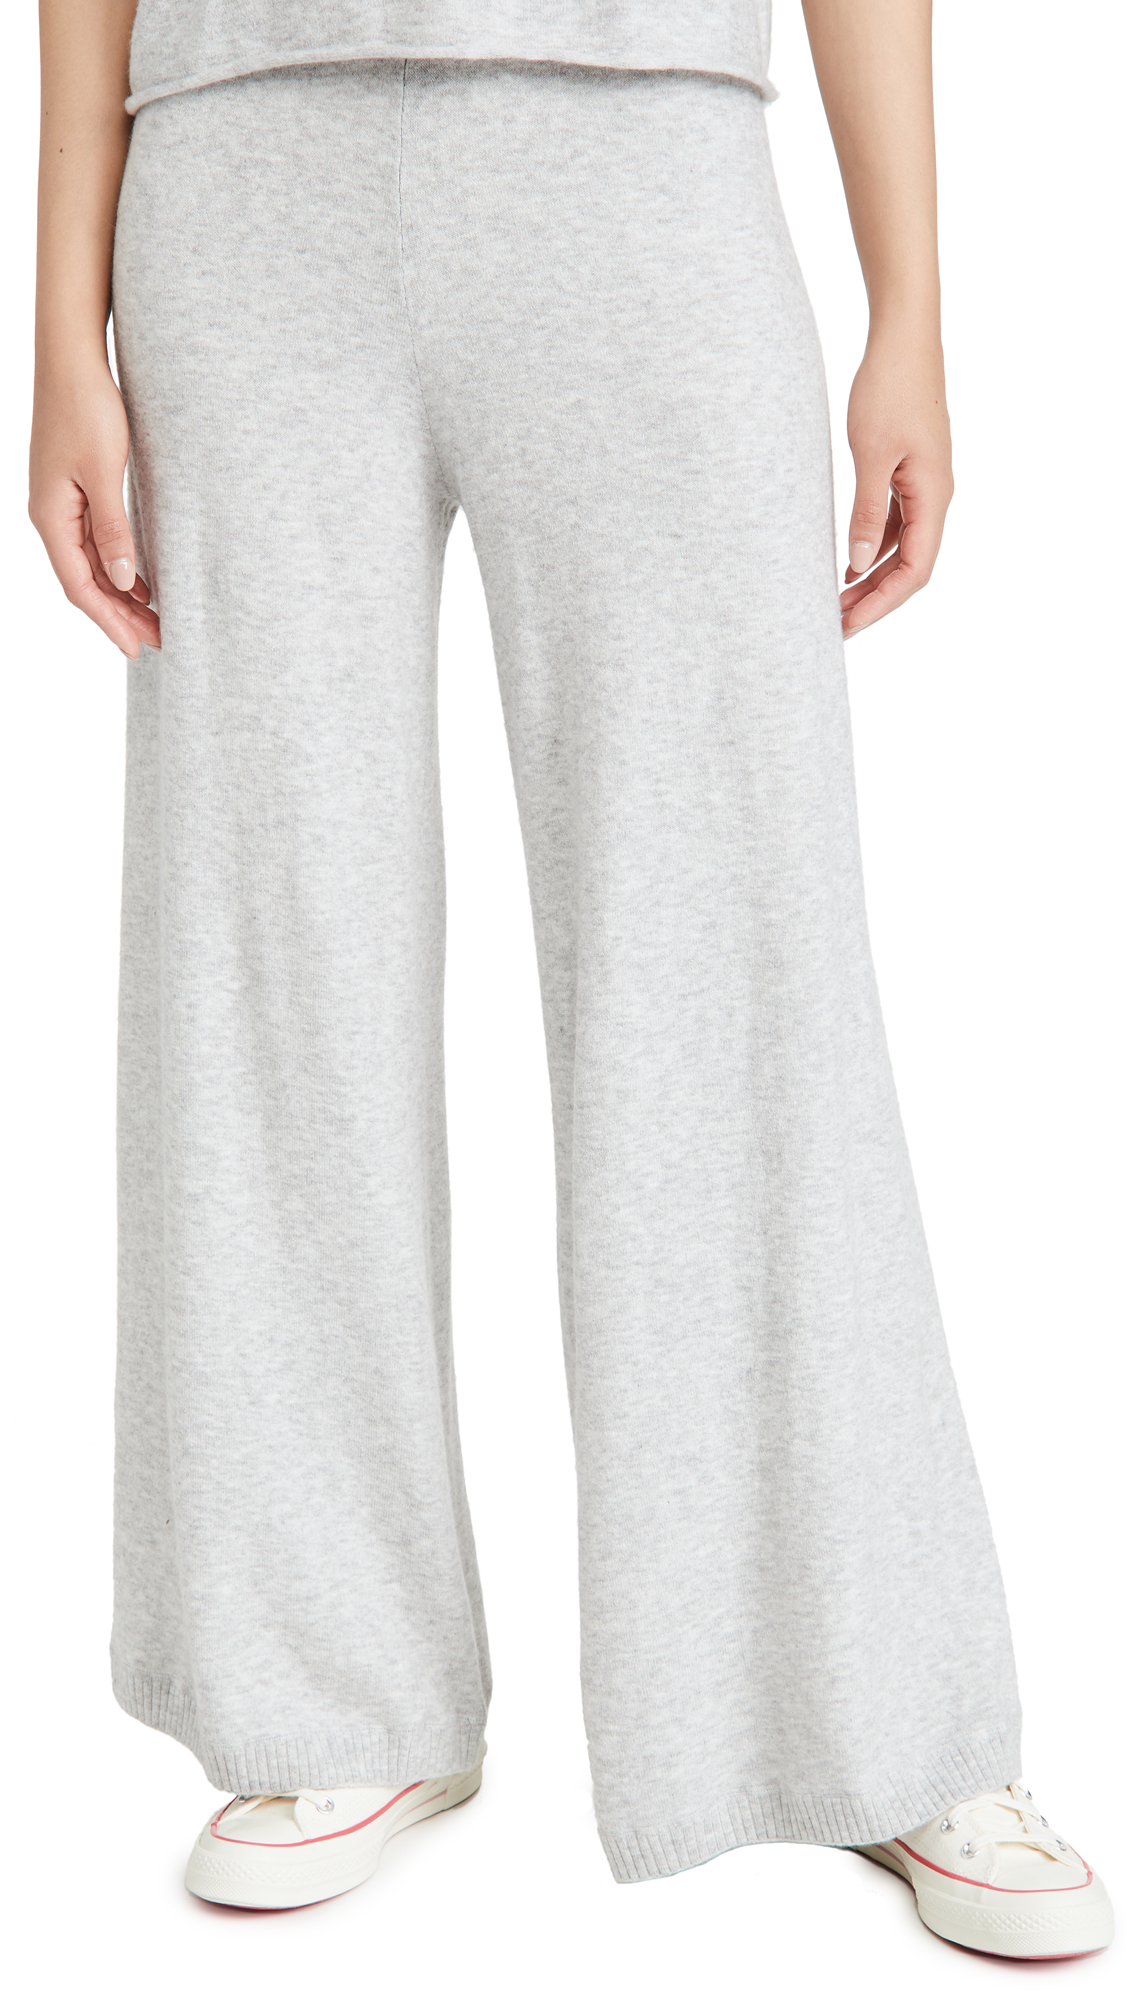 The Upside Igor Knit Lounge Pants